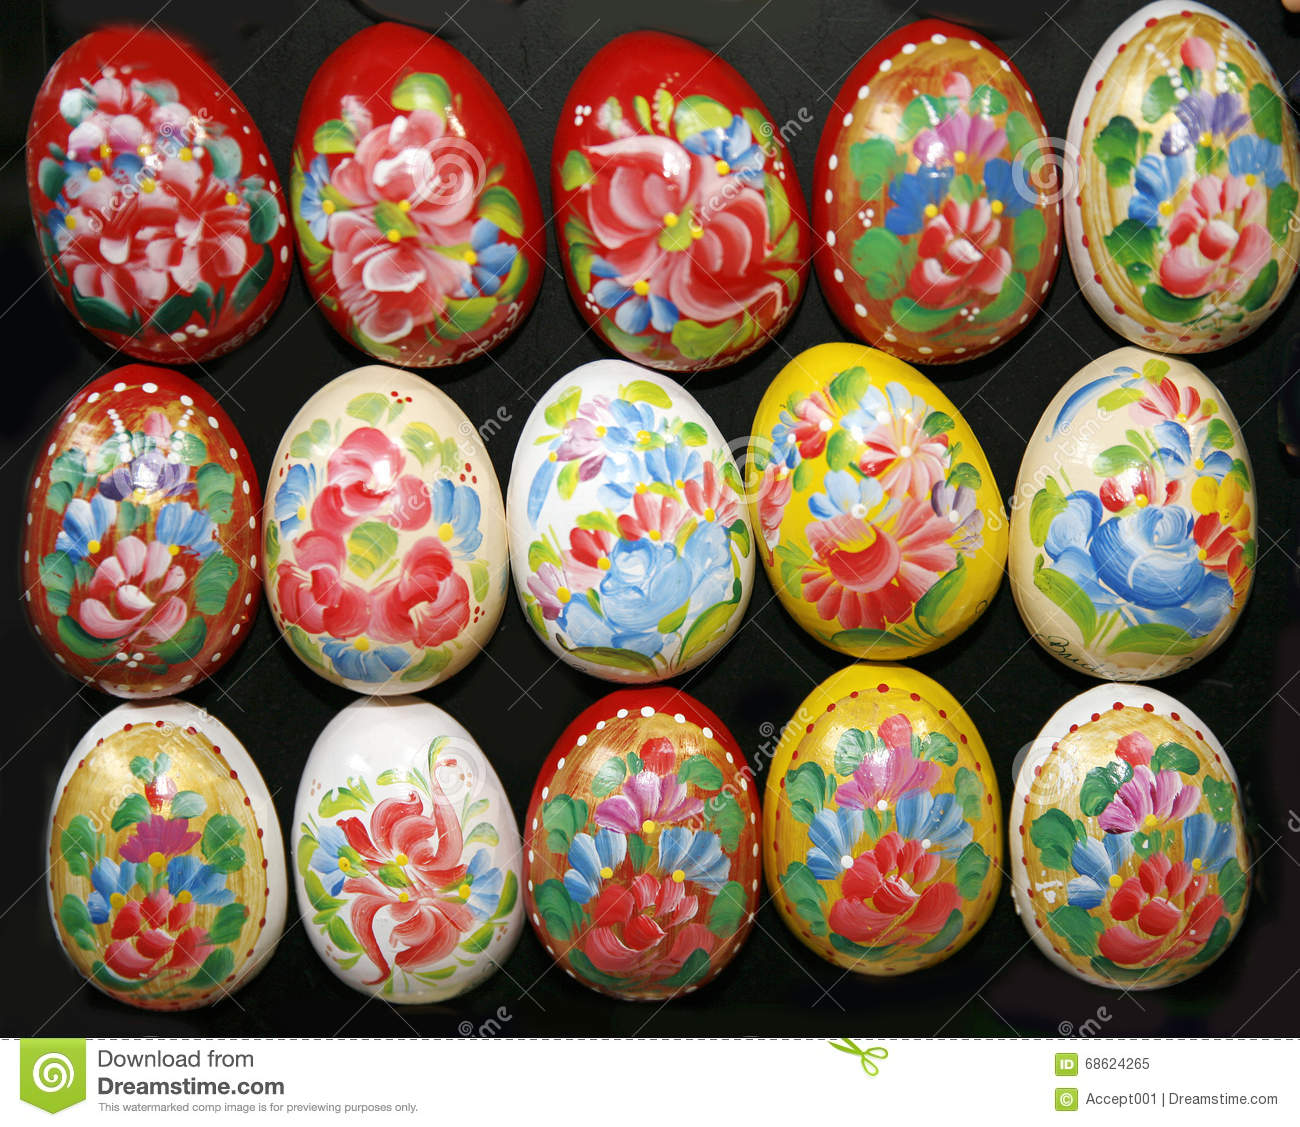 homemade hand painted easter eggs decoration of various colors